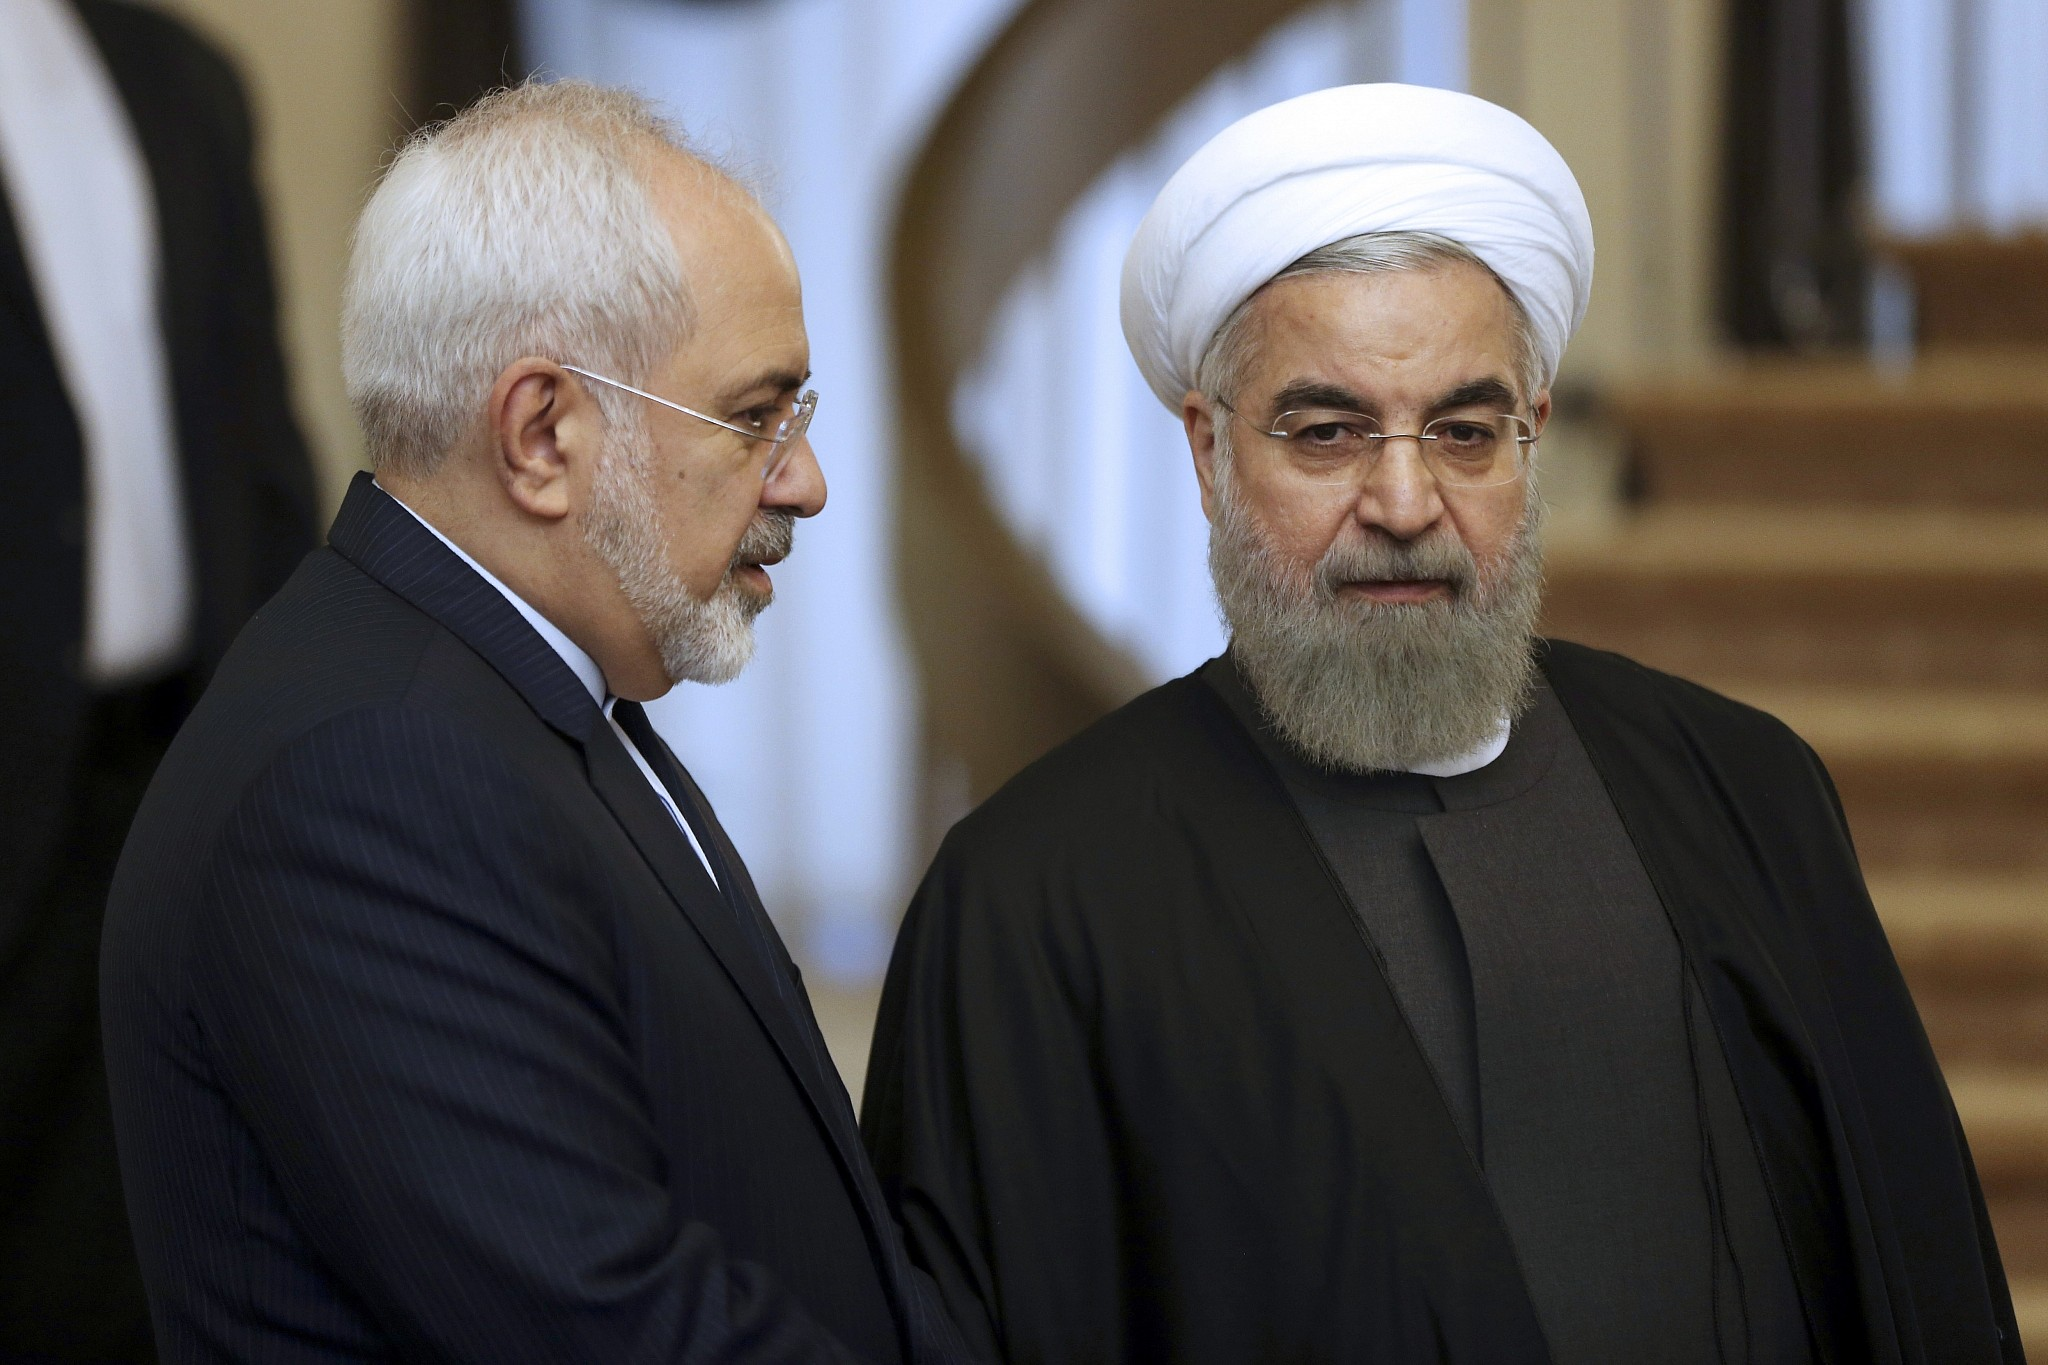 Zarif reacts to Rouhani's rejection of his resignation